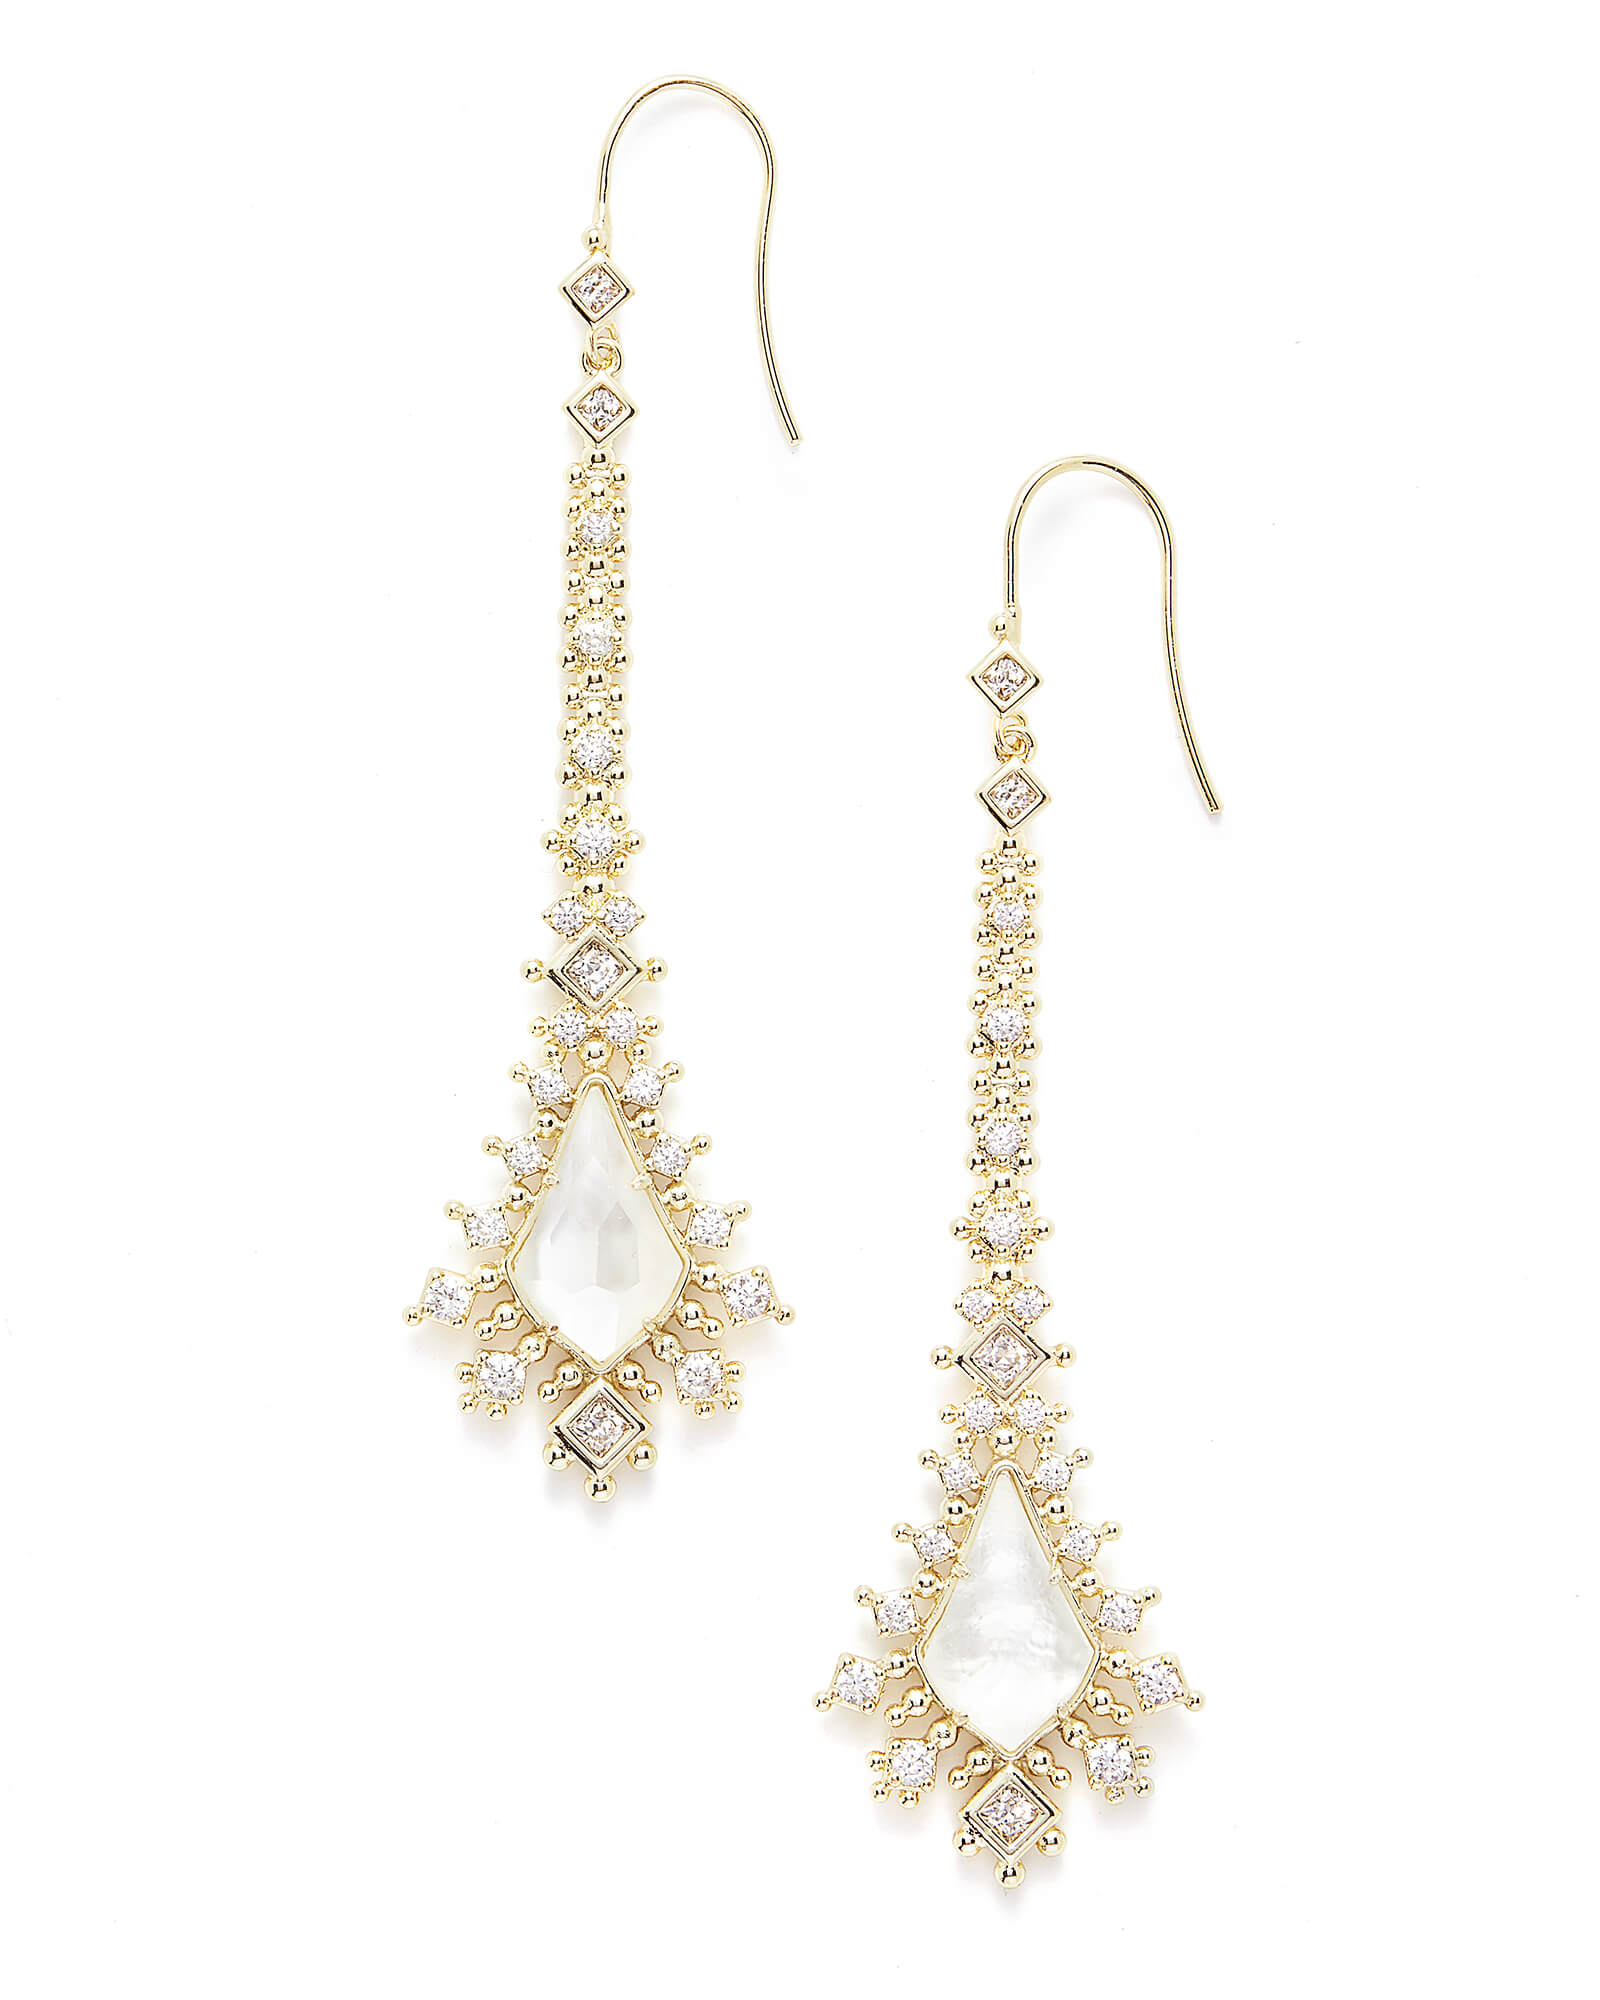 Reimer Statement Earrings in Gold